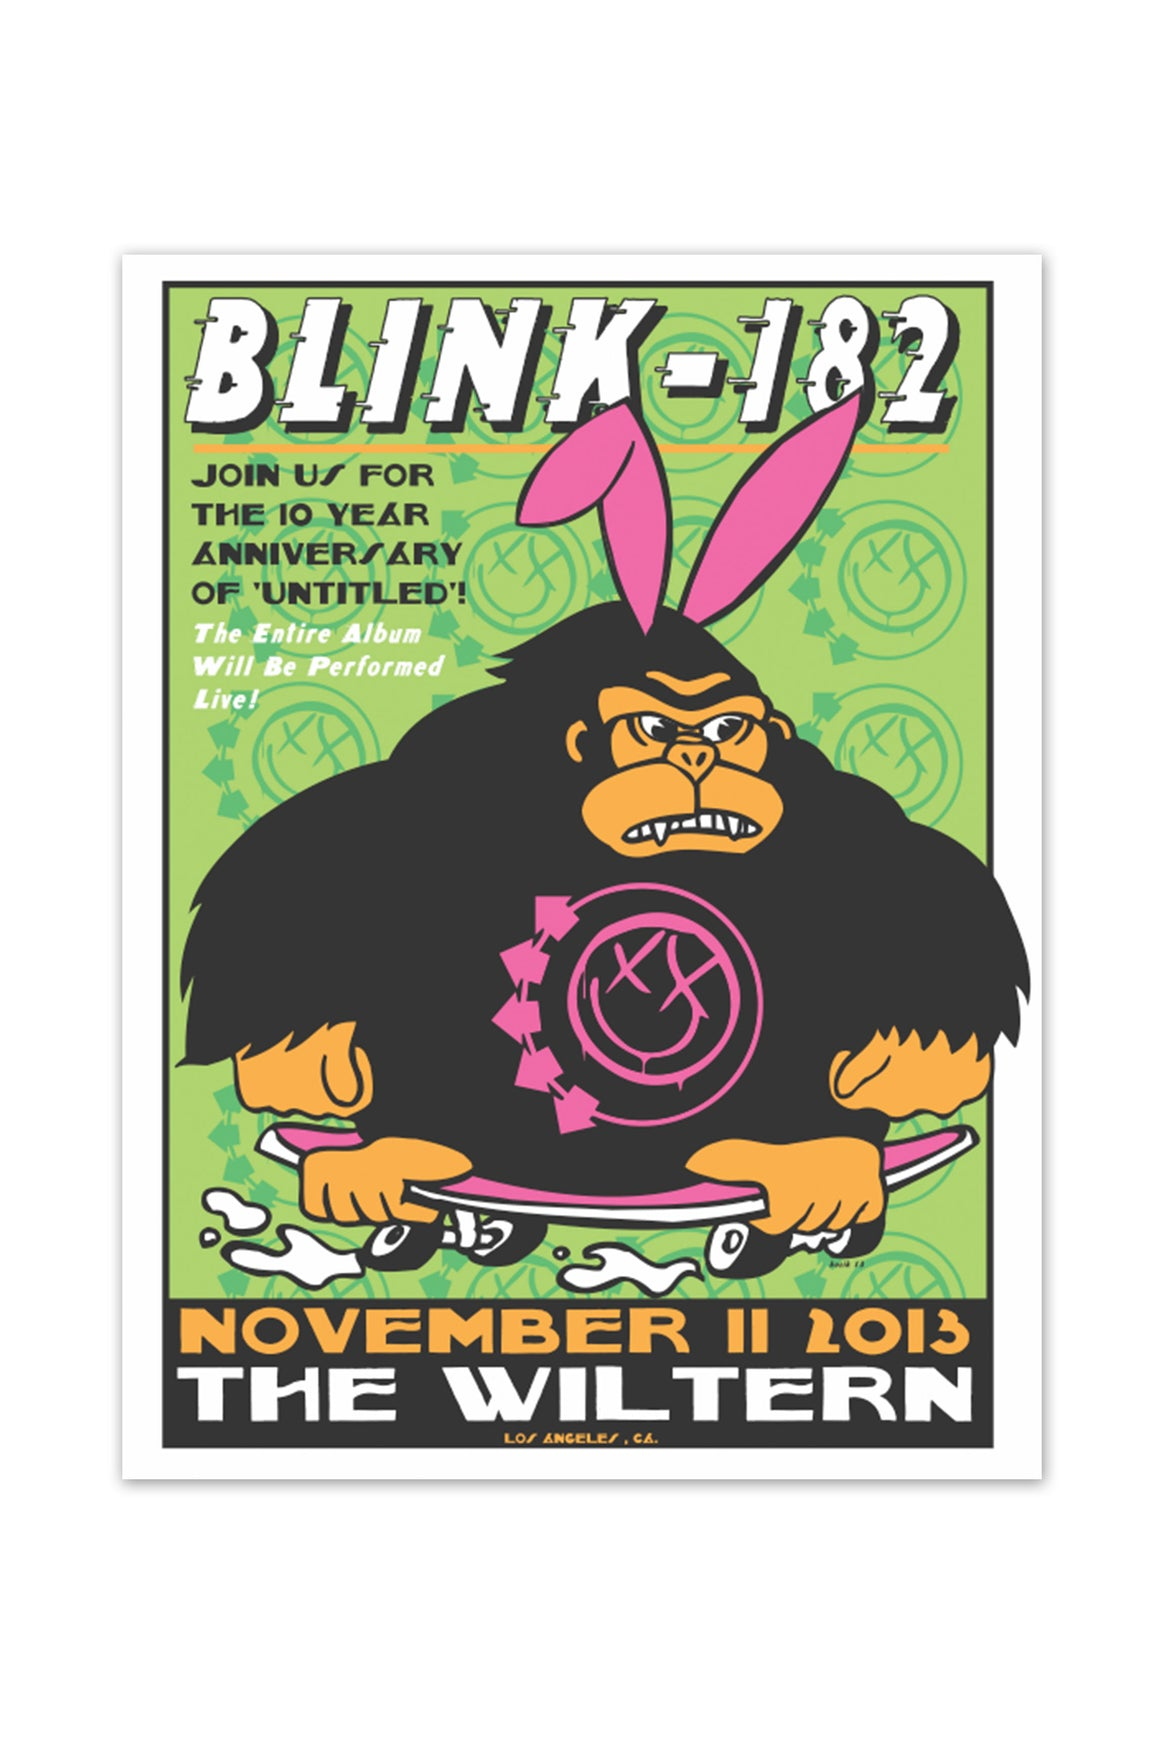 blink-182 11/11/2013 Los Angeles, CA Event Poster